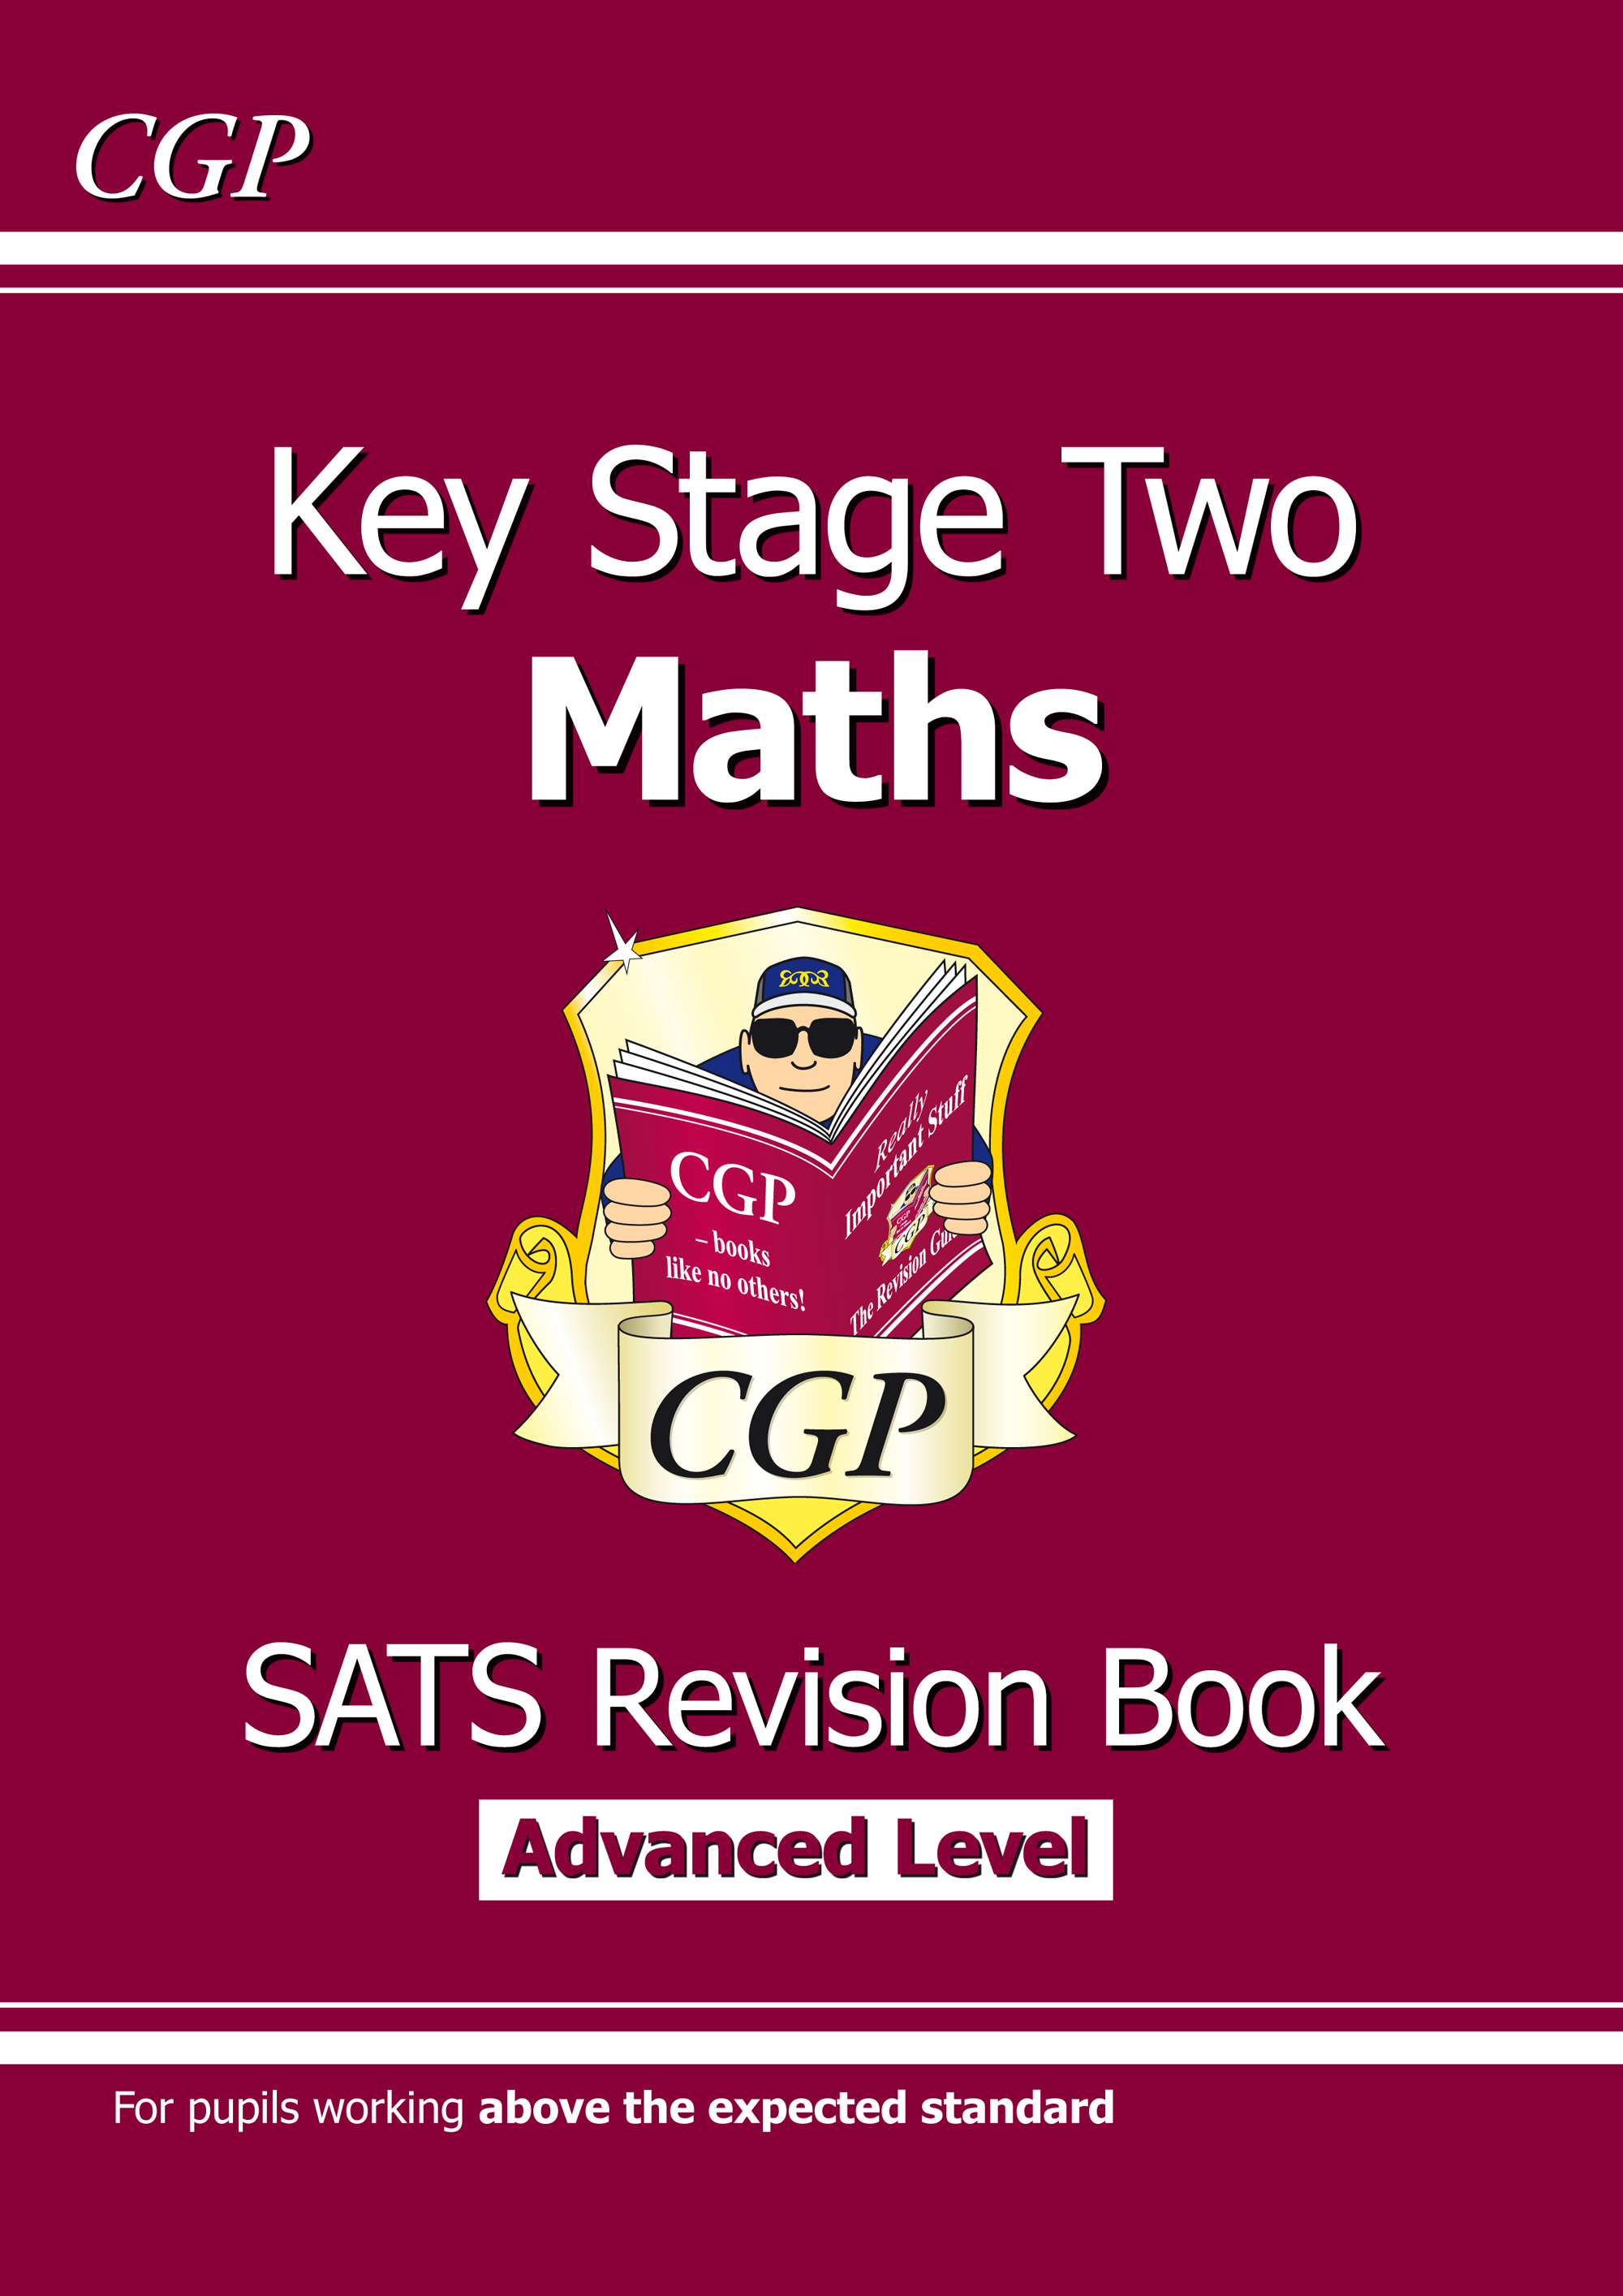 MLHR22 - KS2 Maths Targeted SATs Revision Book - Advanced Level (for the 2019 tests)